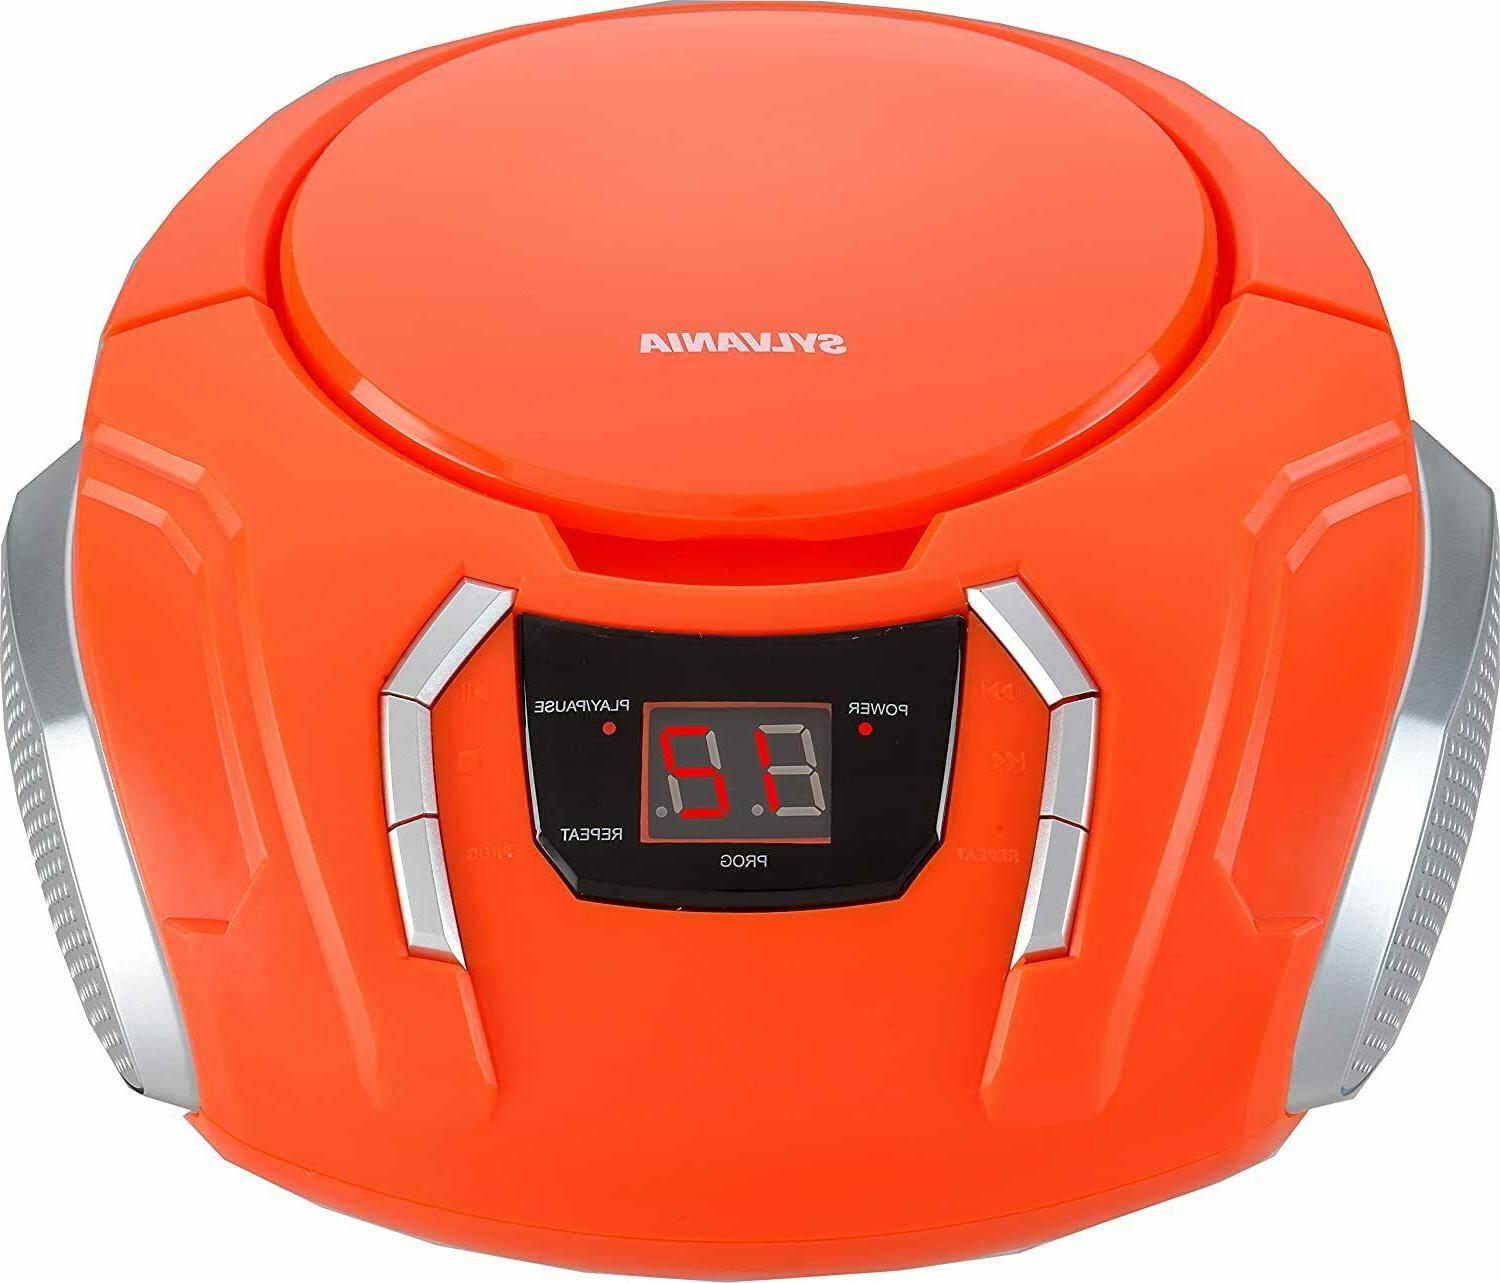 srcd261 portable cd players with am fm